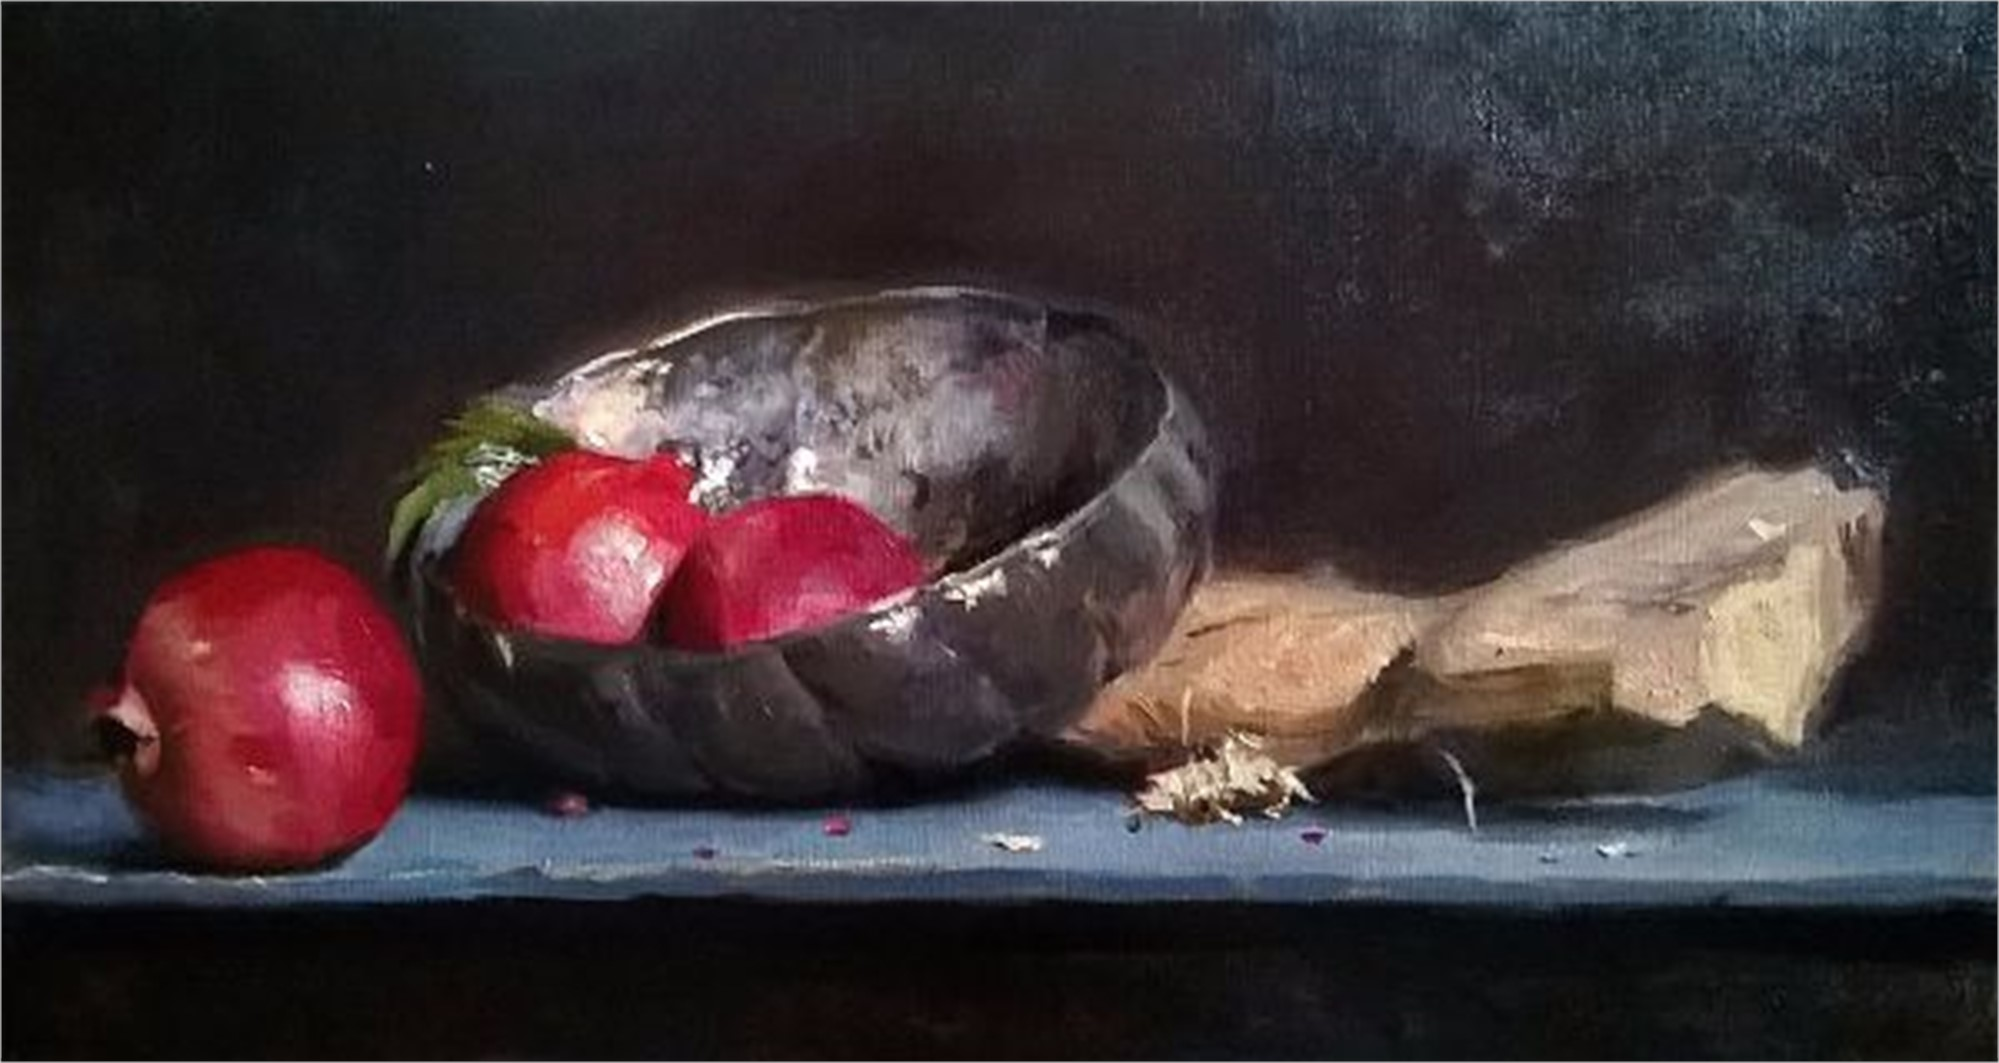 Silver with Pomegranates by Tanvi Pathare